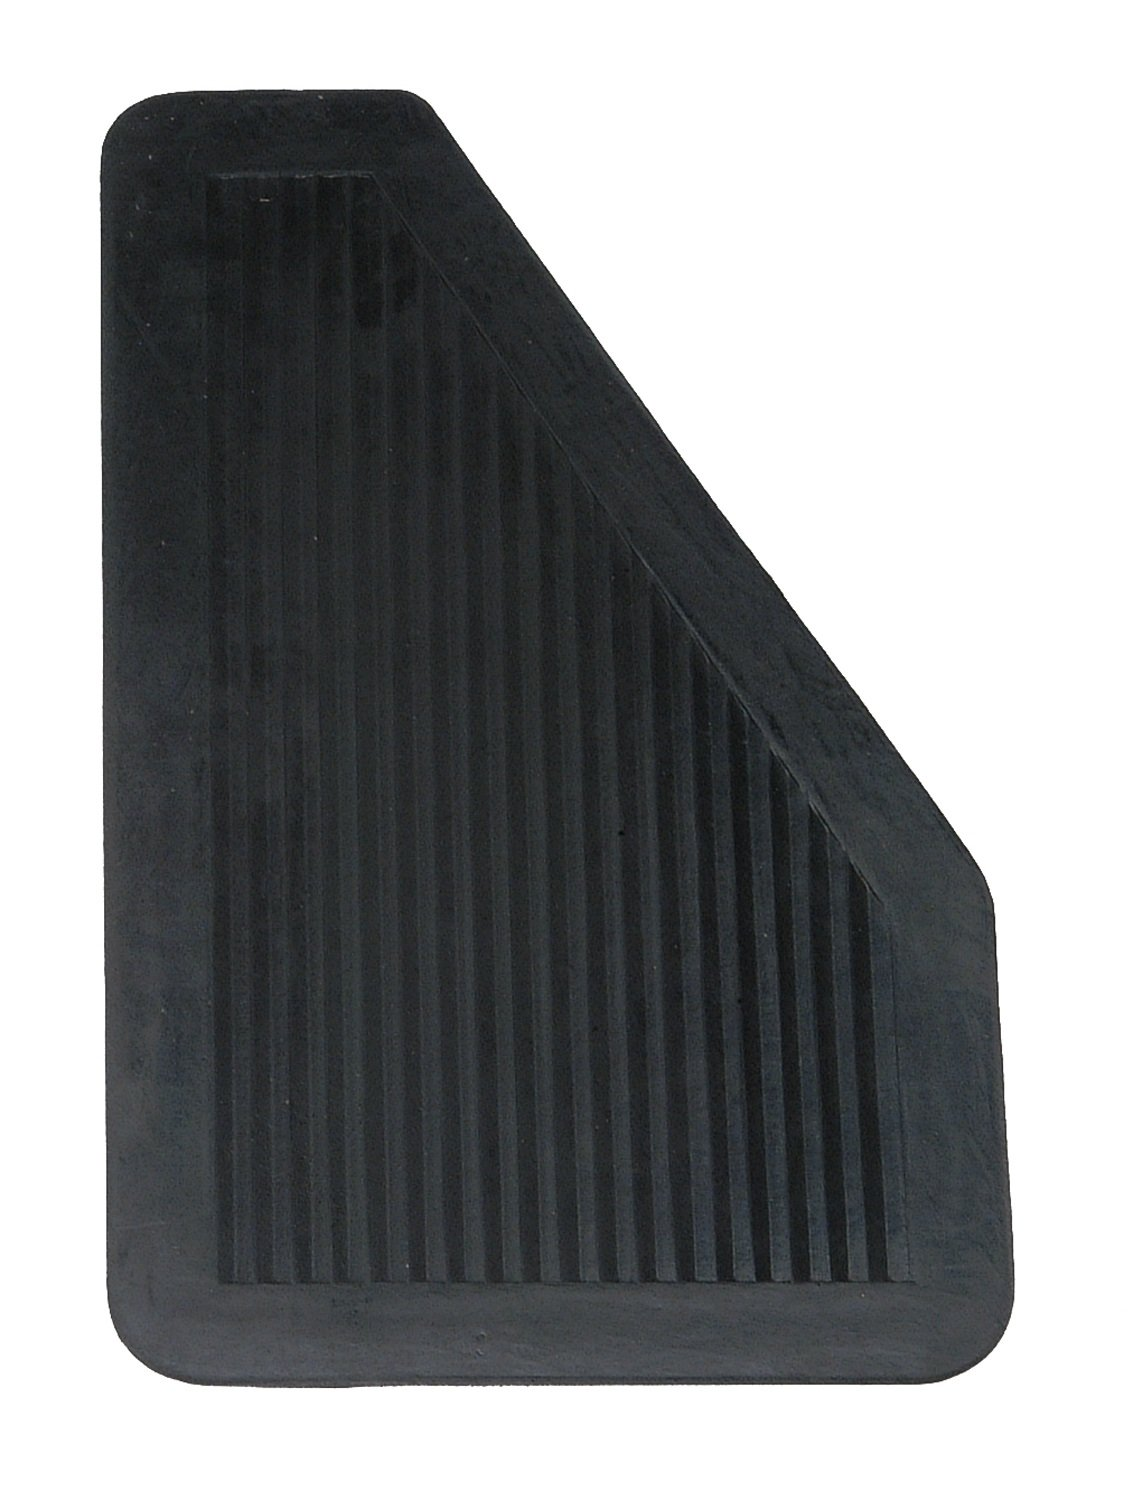 Powerflow 4590 9X14 Black Rubber Guards